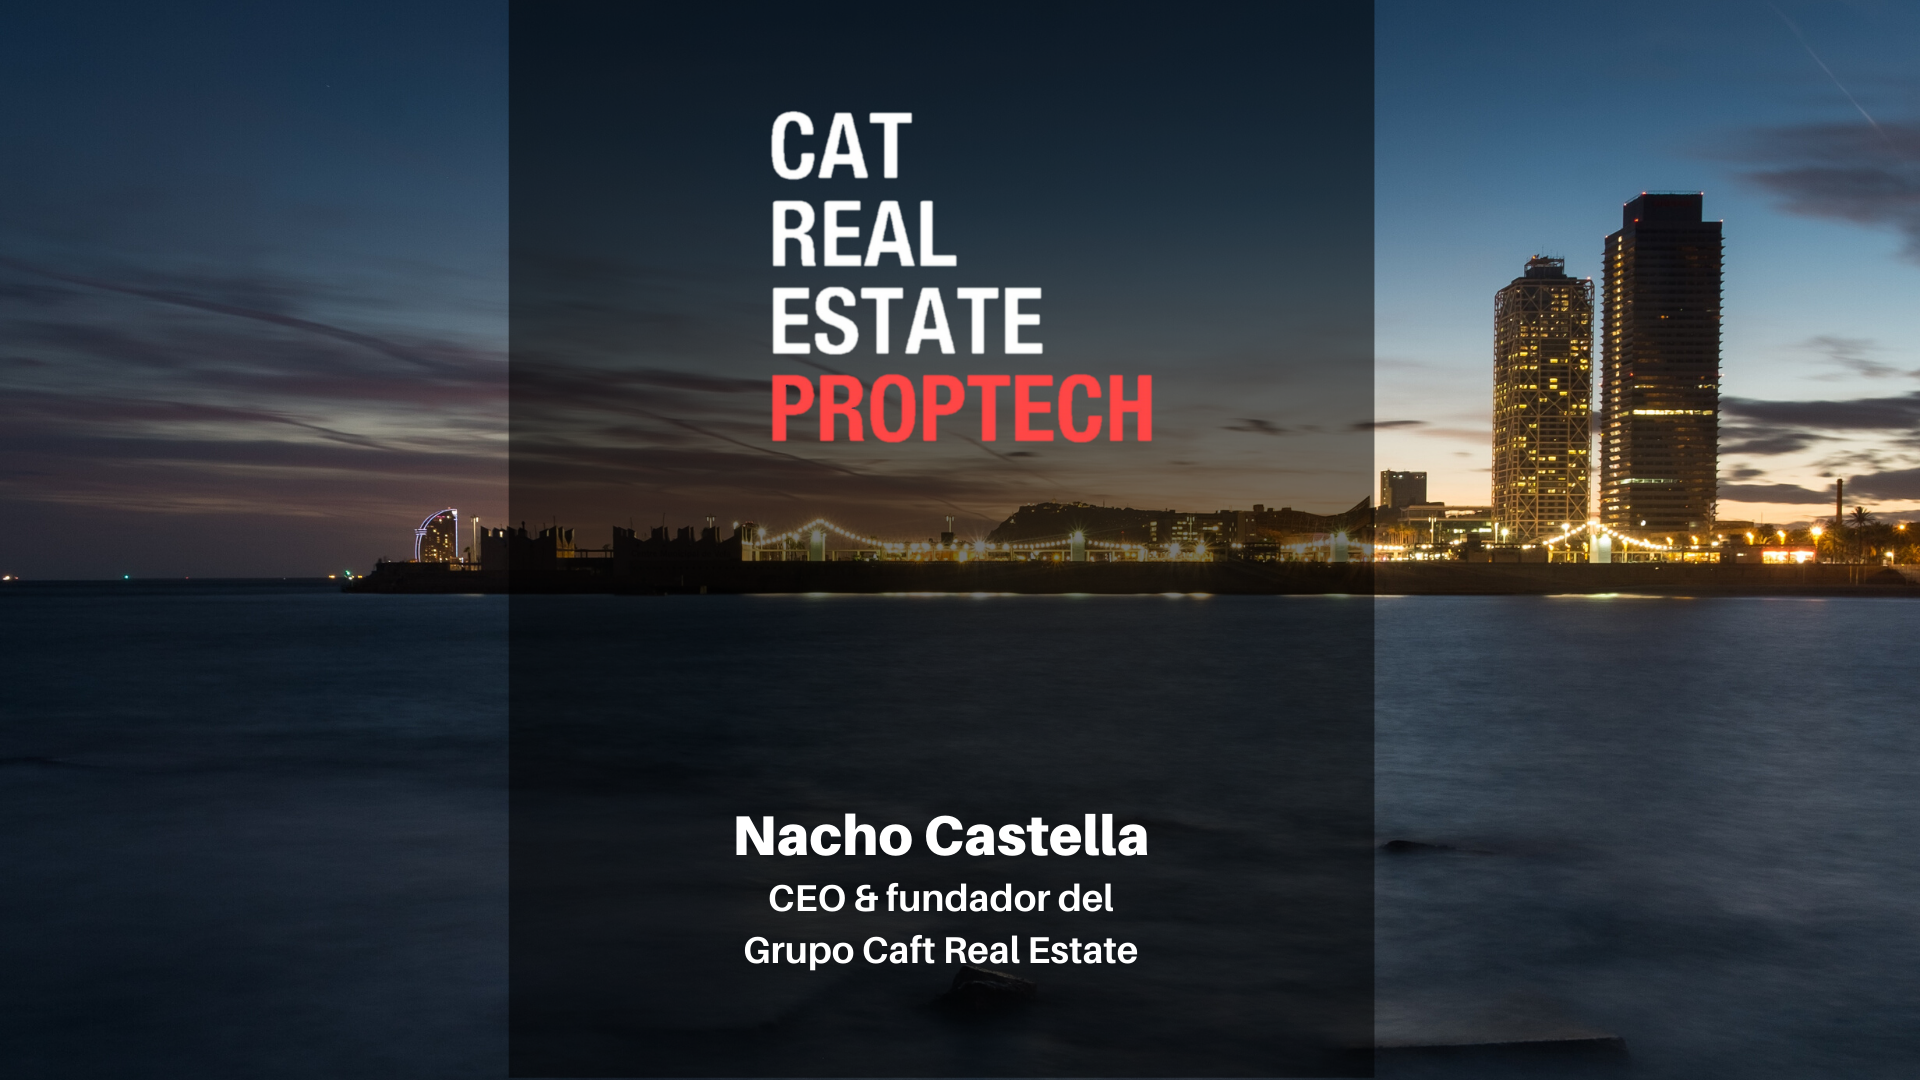 Presentación Cat Real Estate Proptech en Tech Spirit Barcelona